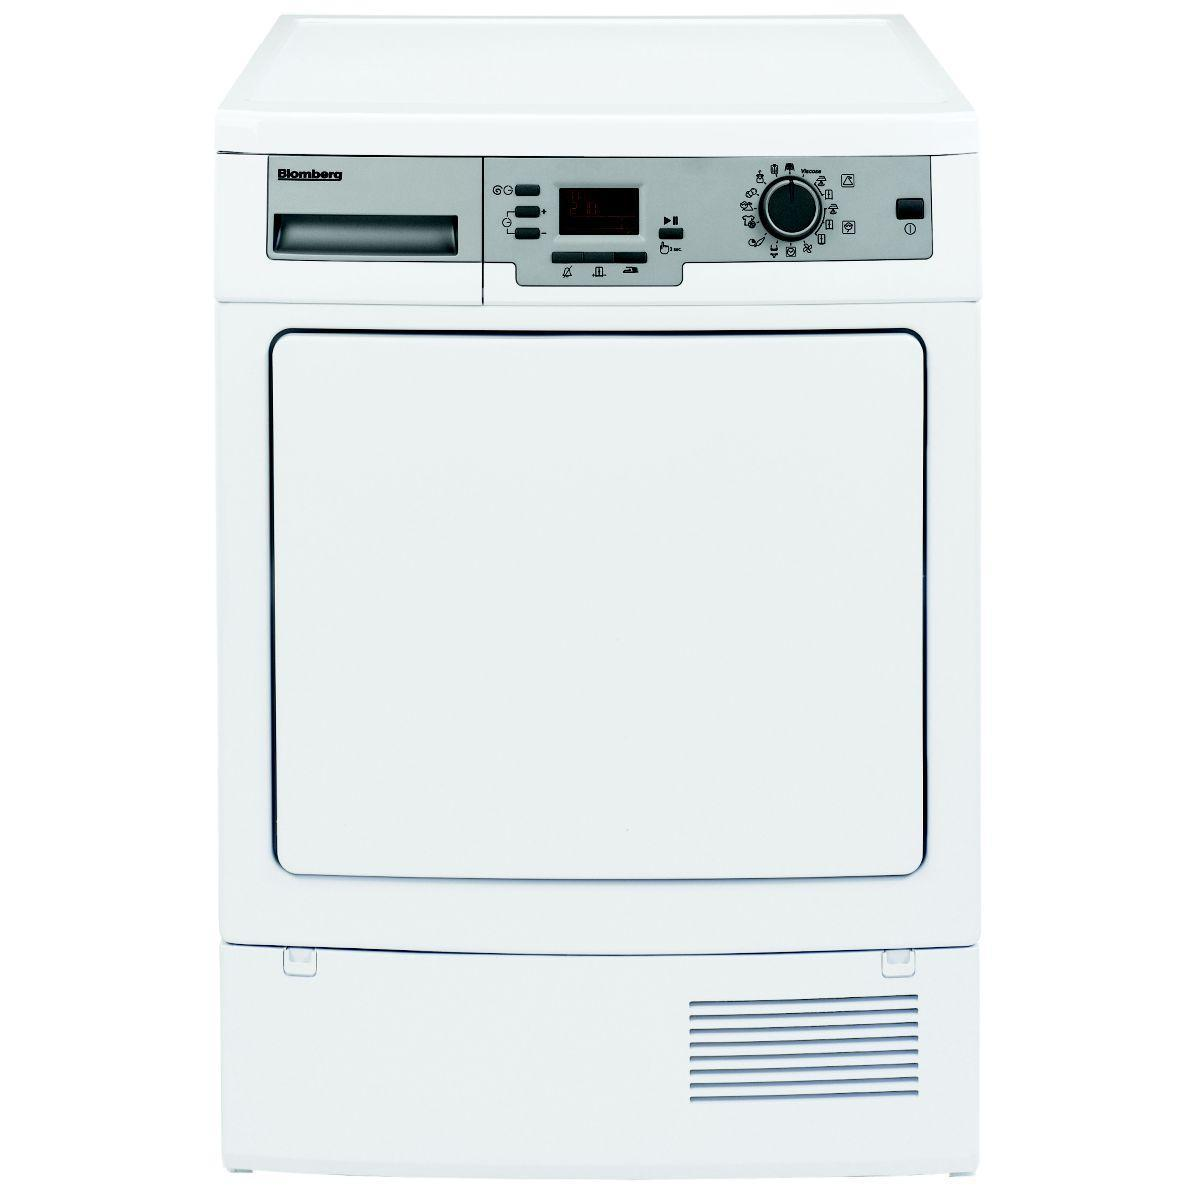 Sèche-linge Frontal BLOMBERG TKF 7459 A